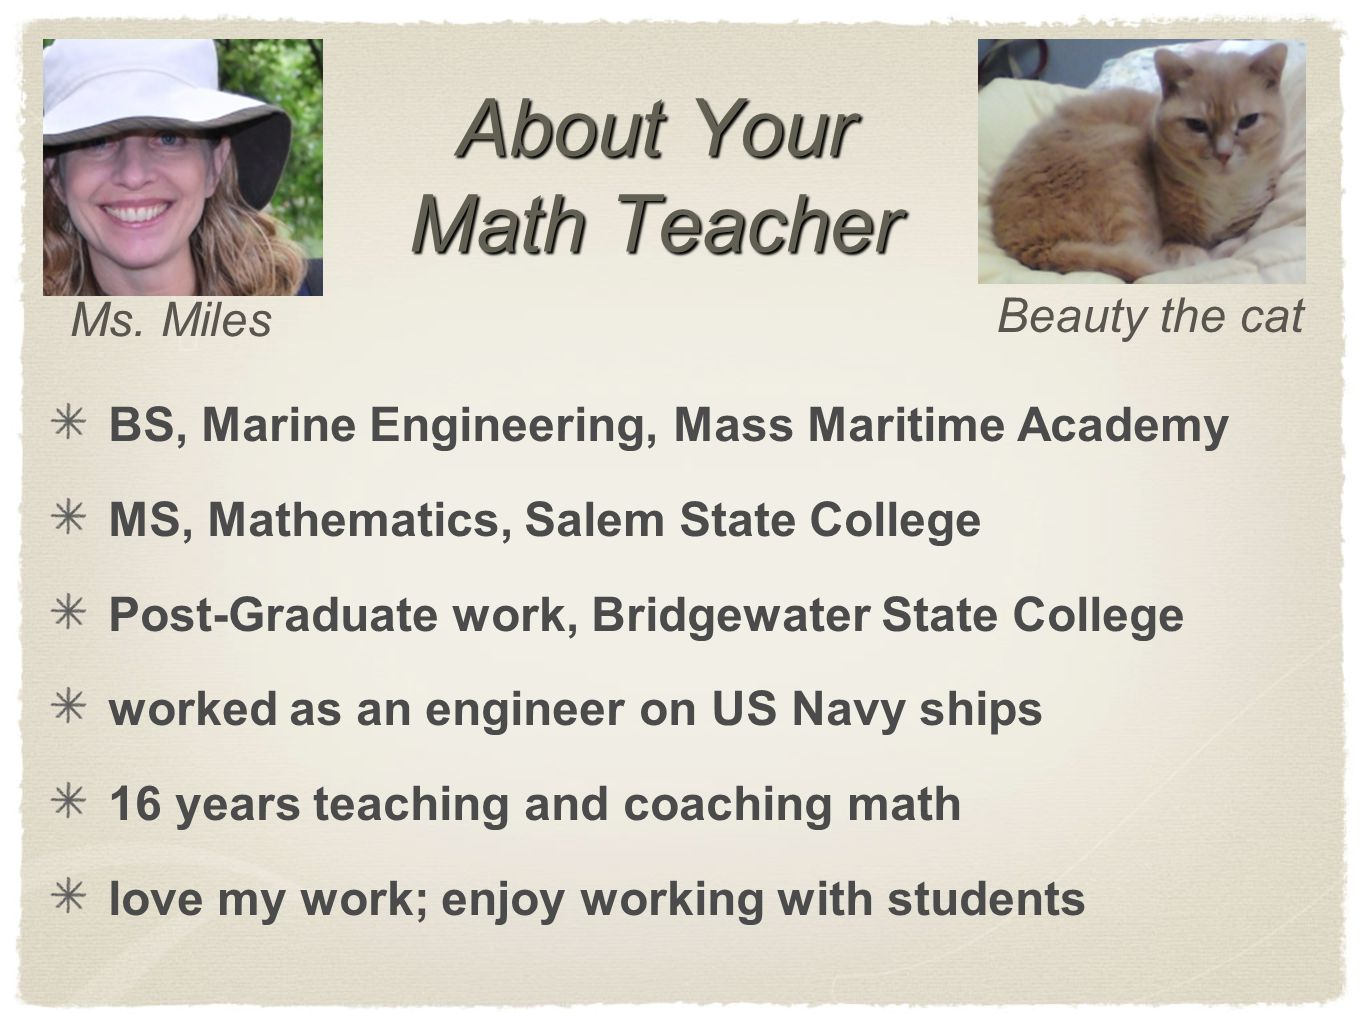 About Your Math Teacher BS, Marine Engineering, Mass Maritime Academy MS, Mathematics, Salem State College Post-Graduate work, Bridgewater State College worked as an engineer on US Navy ships 16 years teaching and coaching math love my work; enjoy working with students Beauty the cat Ms.